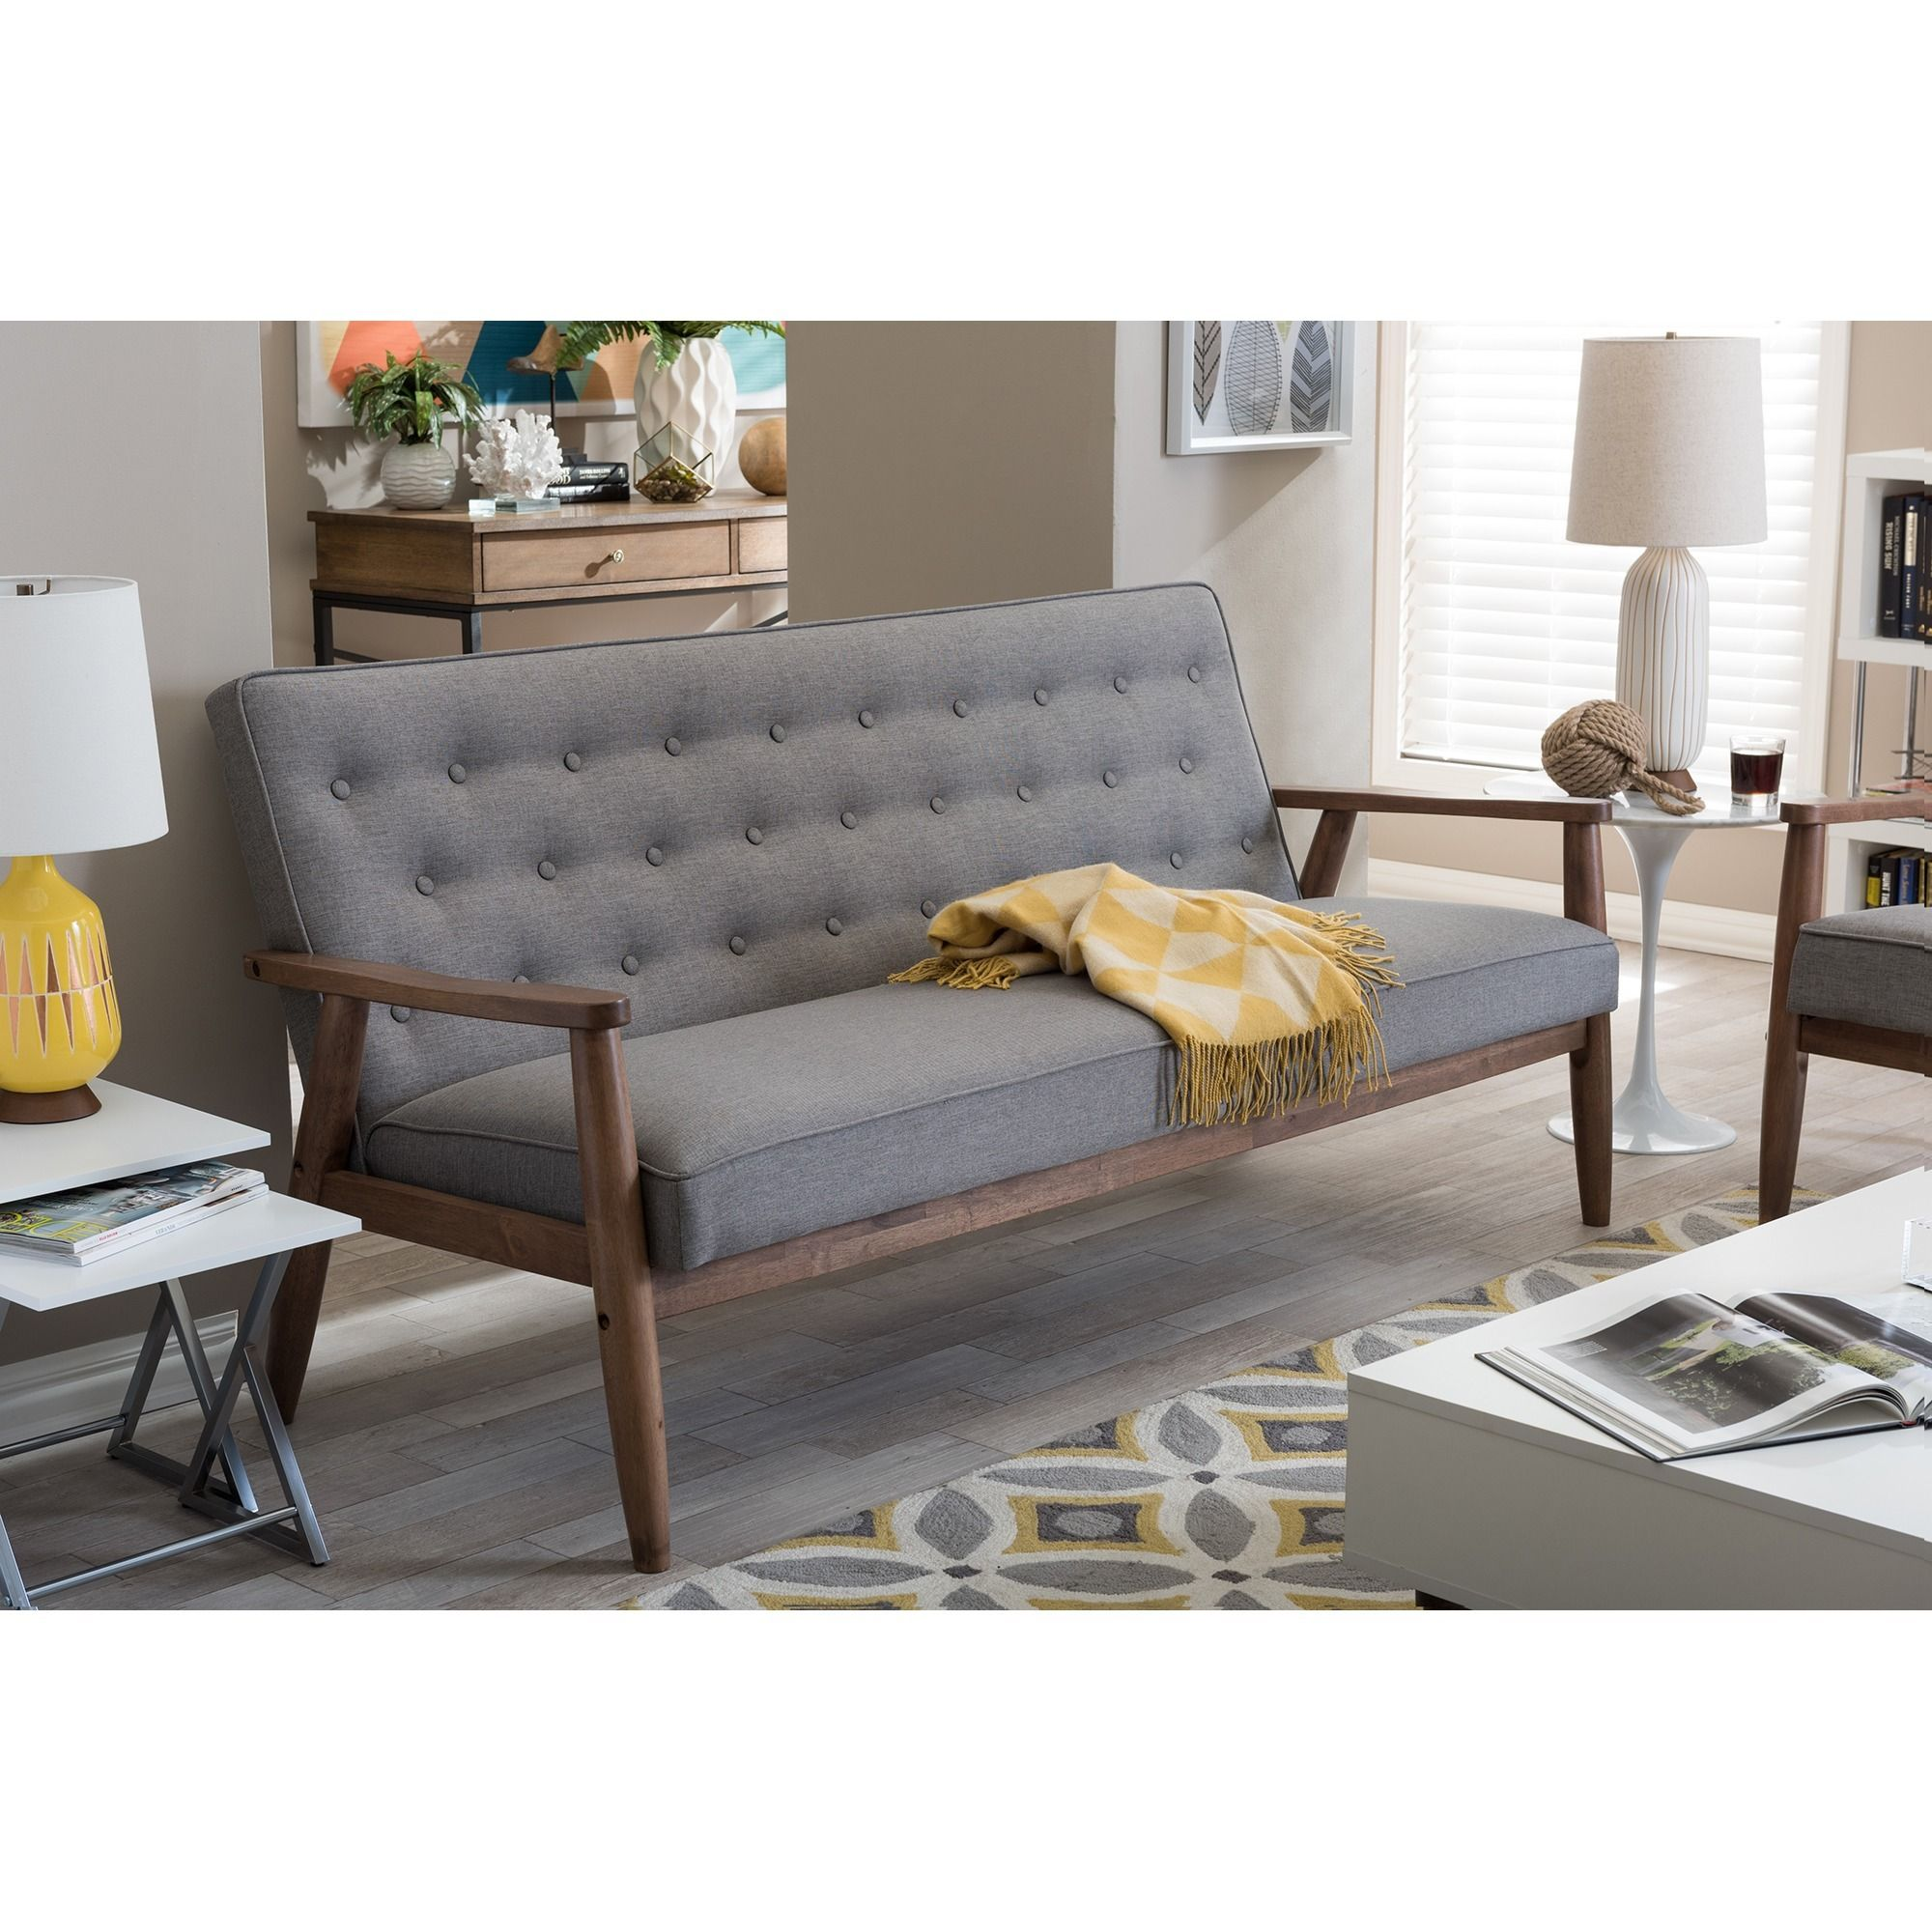 Baxton Studio Sorrento Mid Century Retro Modern Grey Fabric Upholstered  Wooden 3 Seater Sofa By Baxton Studio